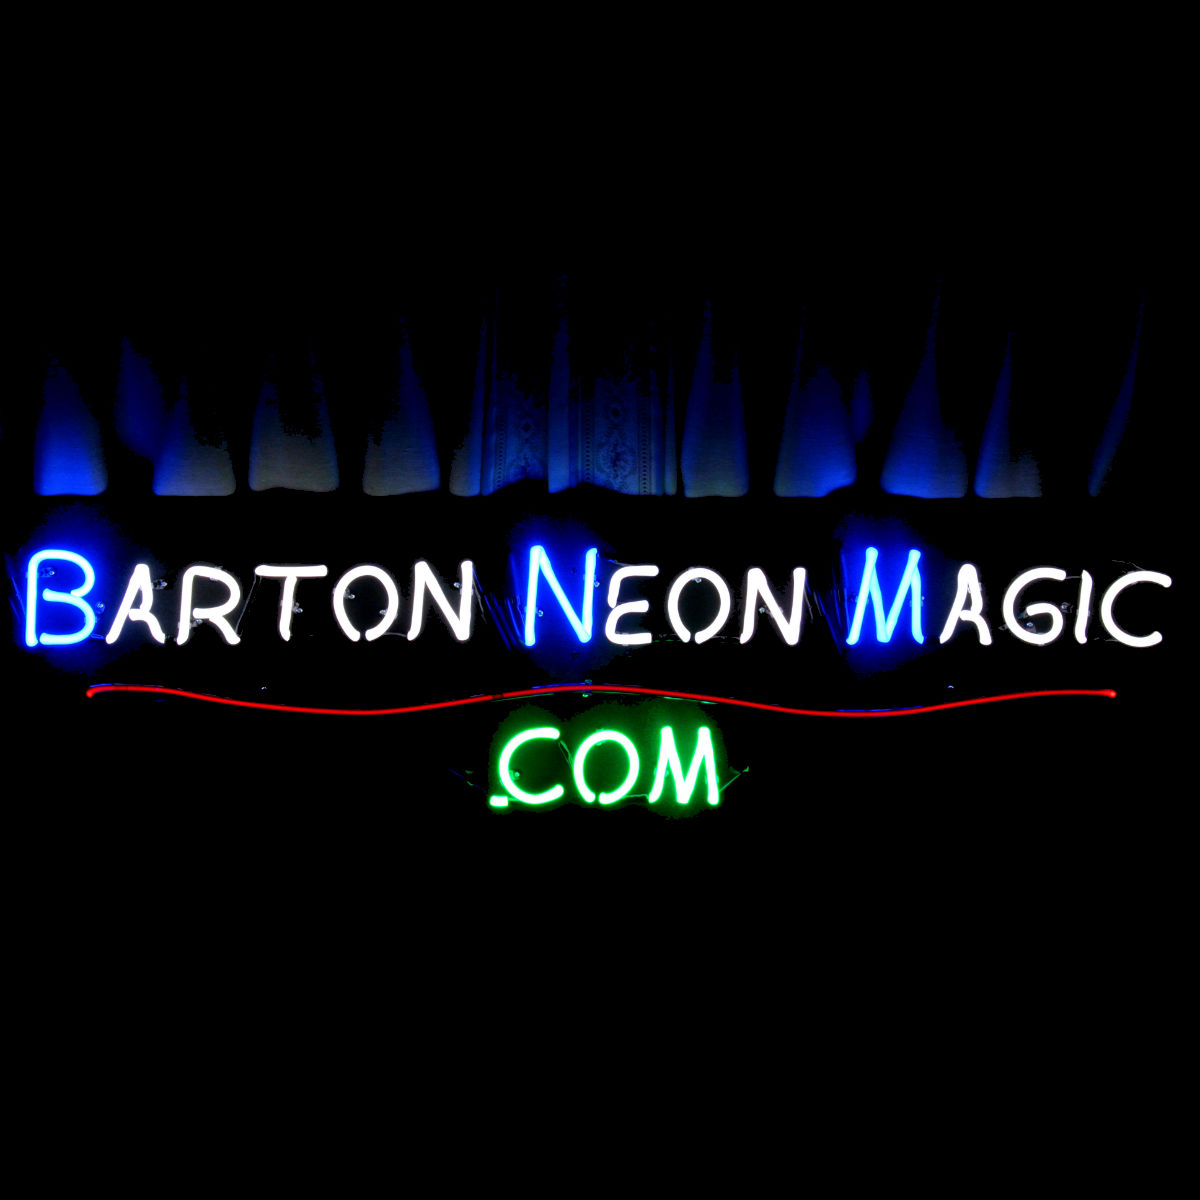 Custom Neon Signs, Neon Lighting, Neon Art, Neon Sculptures - by John Barton